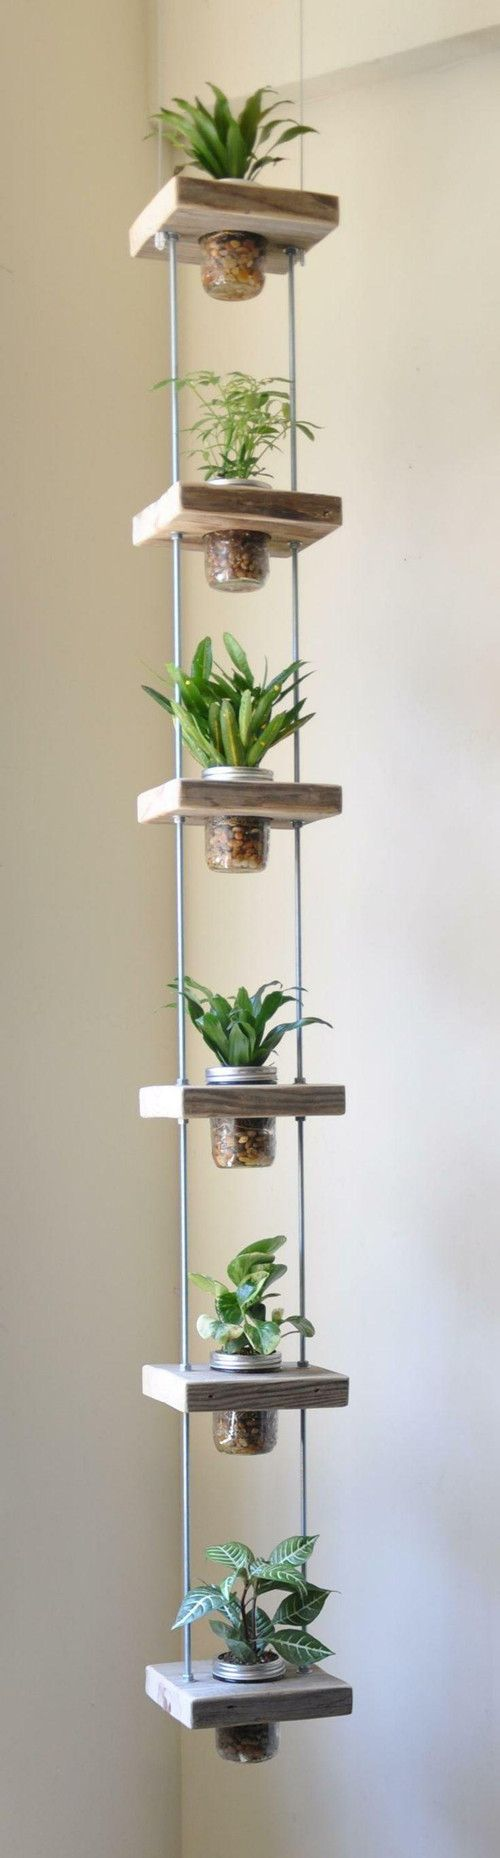 Vertical garden or hanging planter - SaiFou Beautiful!